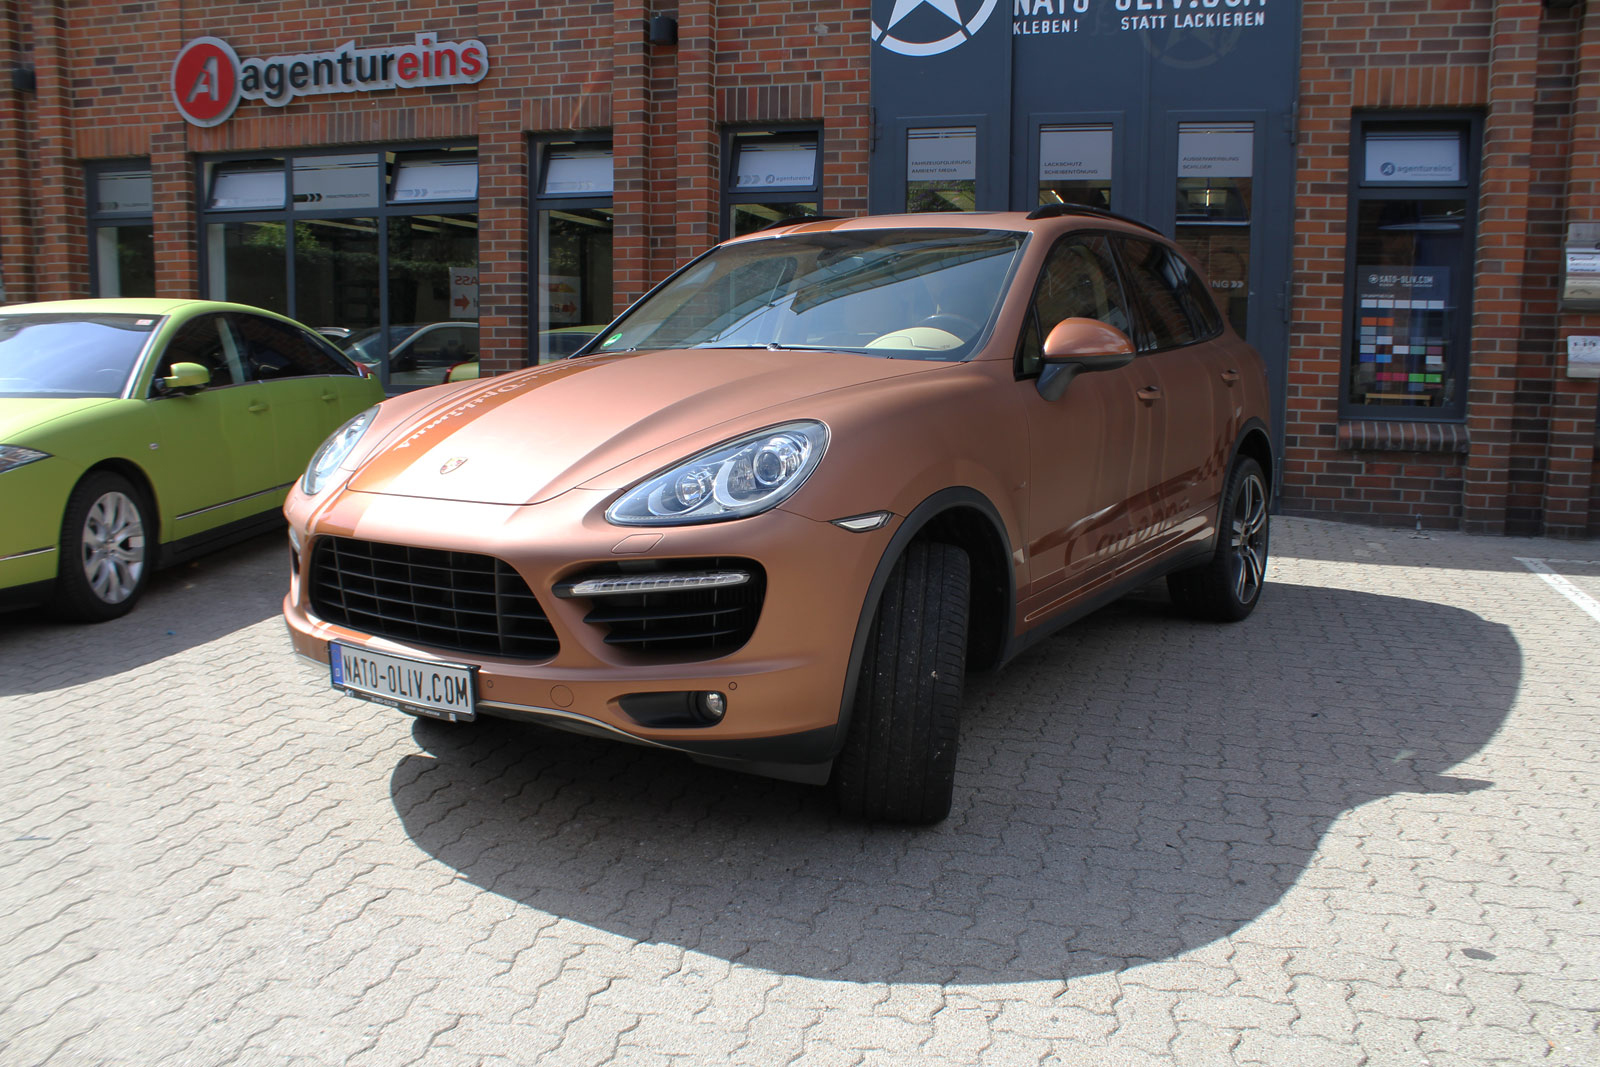 Porsche Cayenne Folierung in bronze matt metallic sowie Rallyestreifen in bronze Glanz.